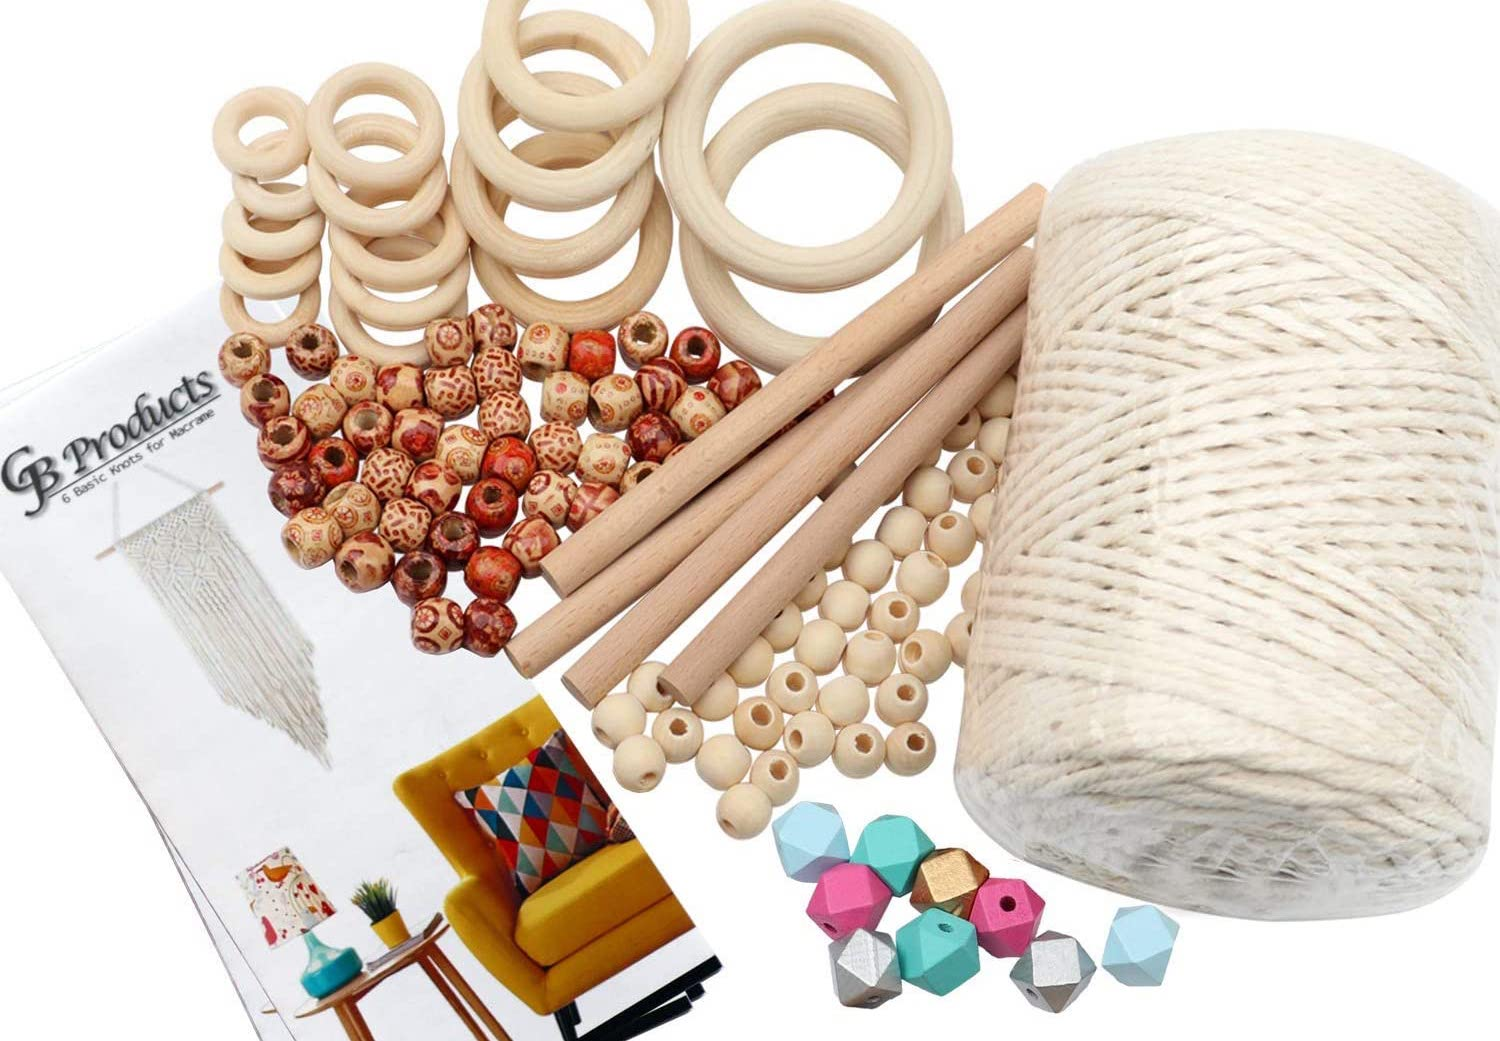 A macrame kit with a skein of ivory cord, several wood rings, different types of beads, and an instruction guide